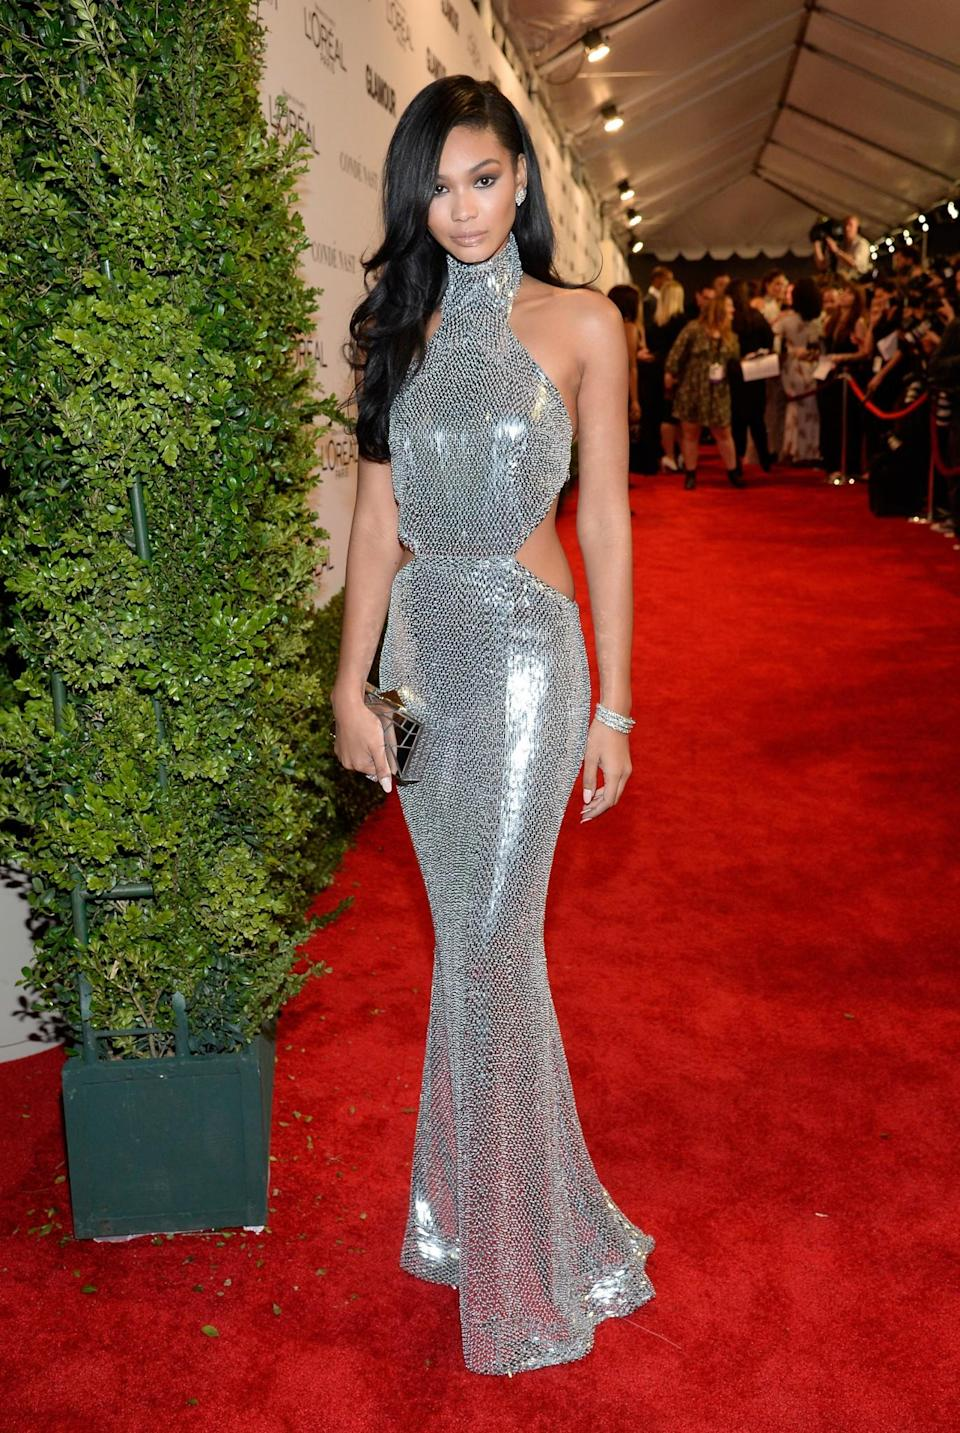 <p>The model's exquisite silver gown was the best metallic outfit we've seen in a long while, showing that it's not hard to avoid the tacky route. <i>[Photo: Getty]</i> </p>